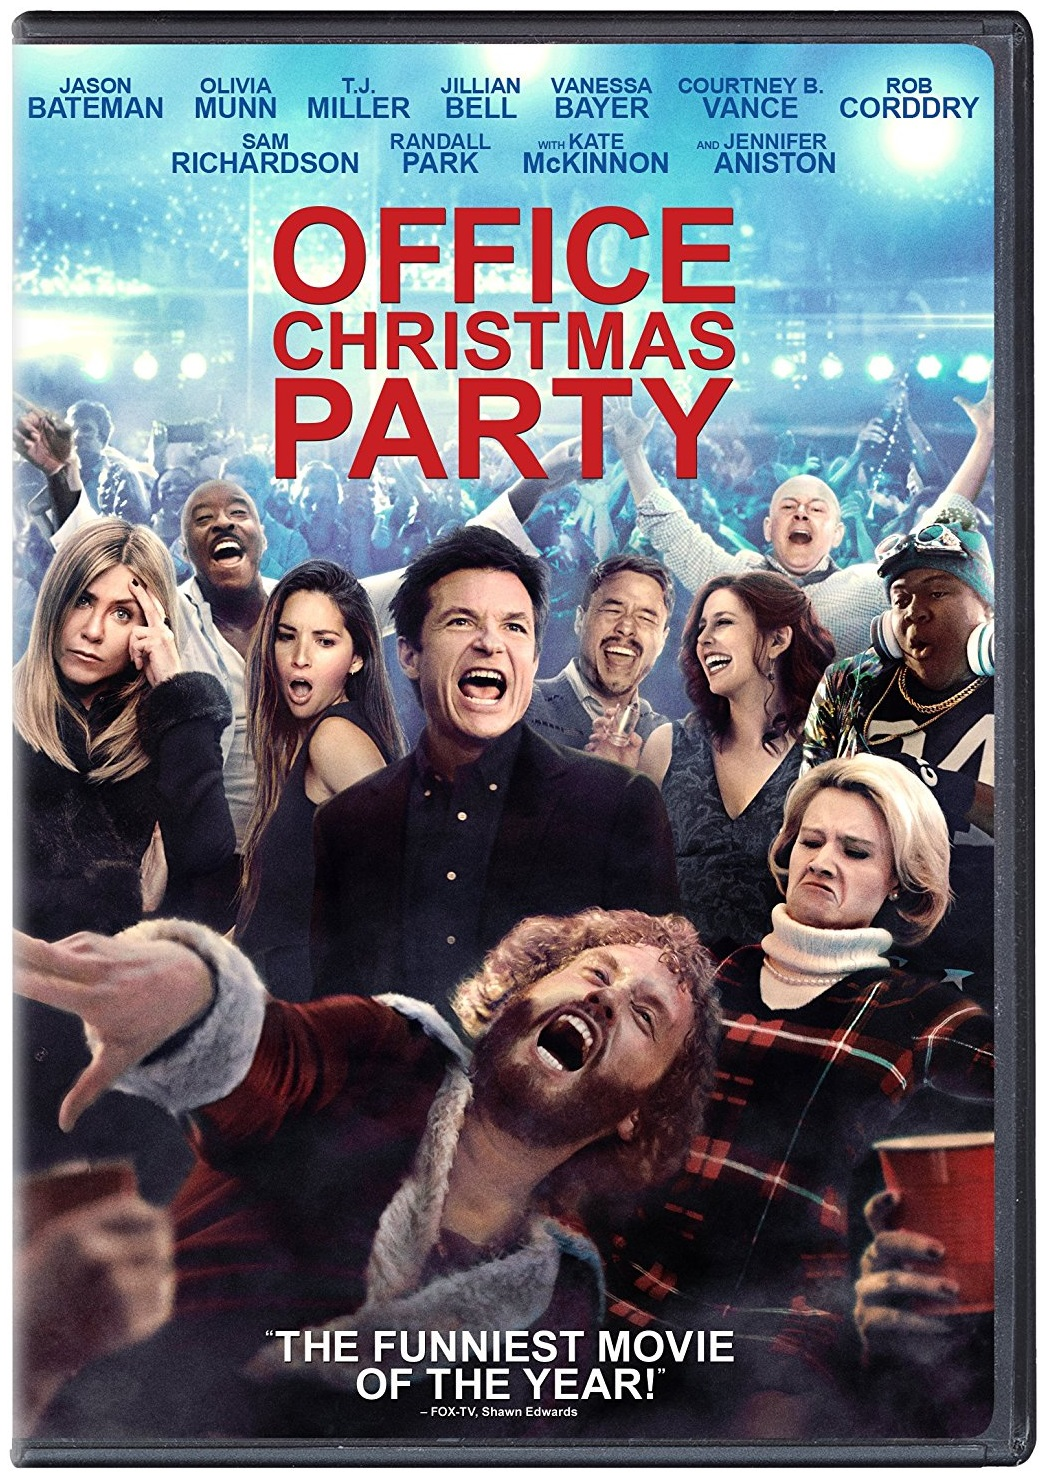 Office Christmas Party: a riotous, tawdry good time – DVD review ...